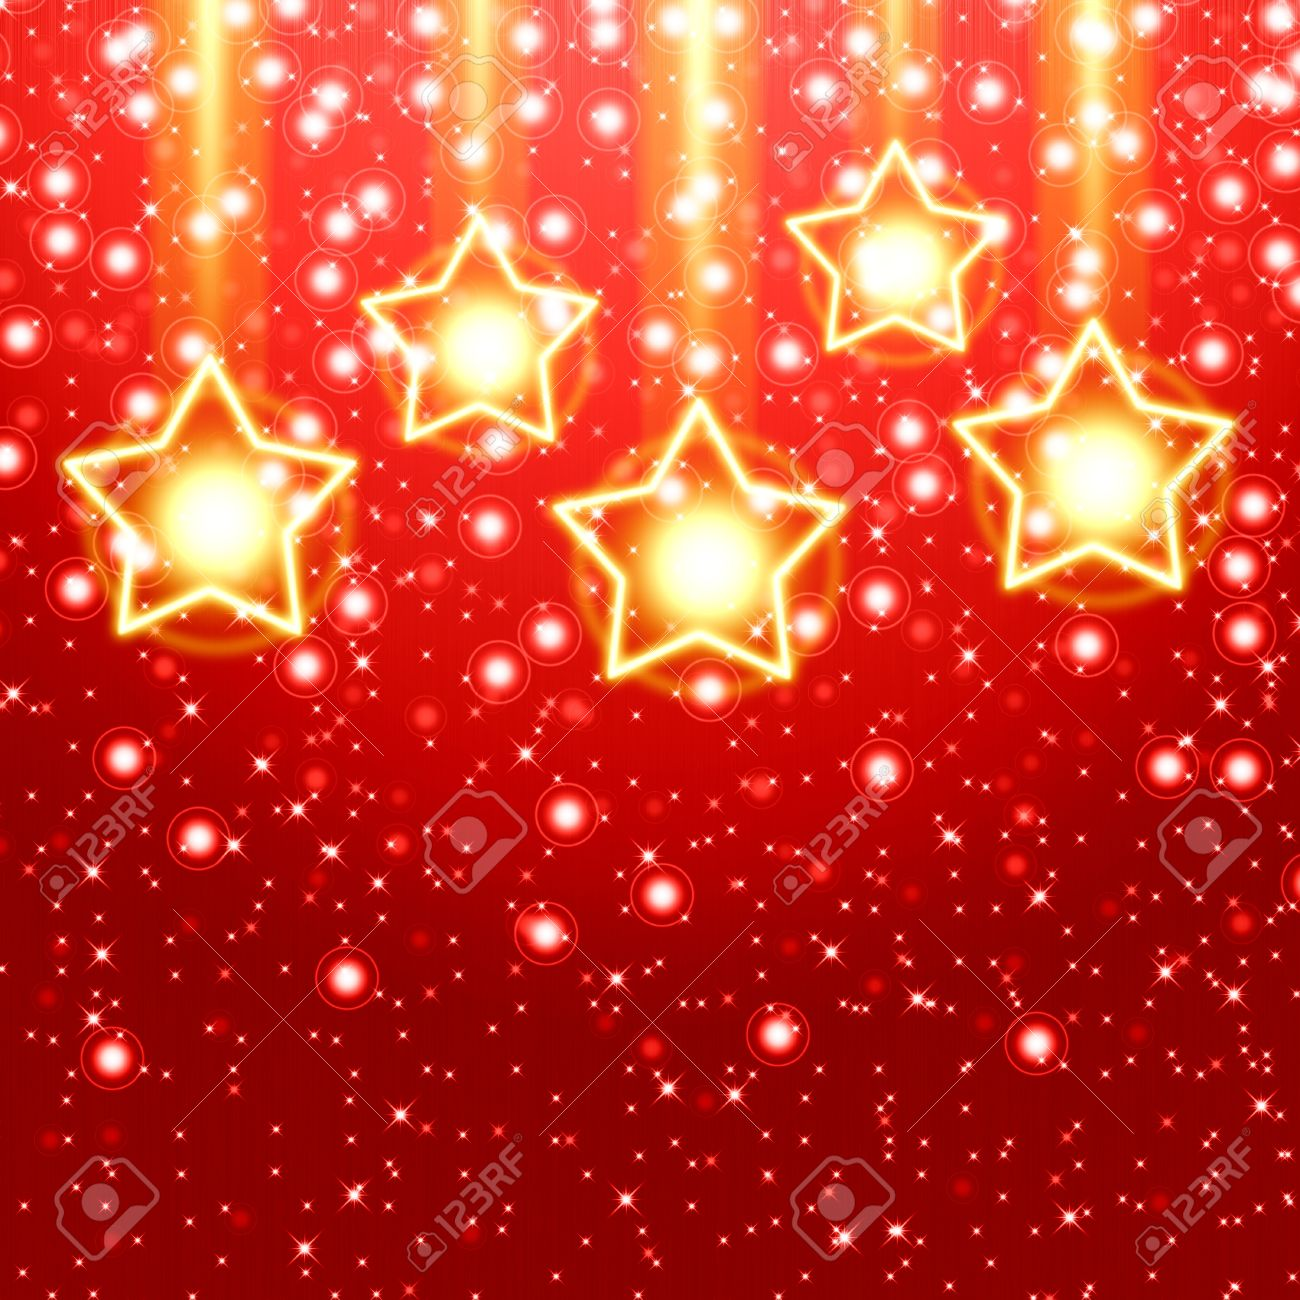 Red Christmas Background With Golden Star Stock Photo, Picture And ...